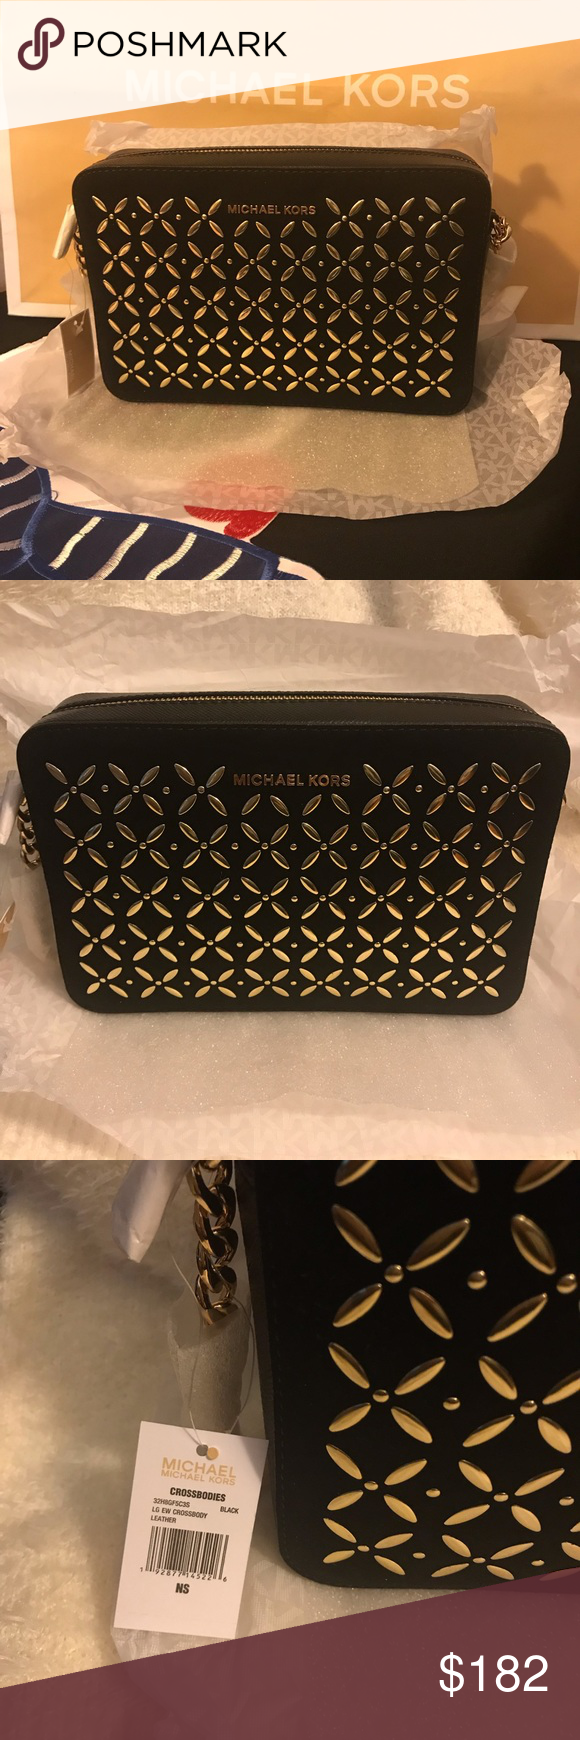 ead4898e408e Michael Kors Crossbody Bag Jet Set Large Embellished Leather Crossbody in  Black and Gold. Original/Authentic with tags. Brand New.